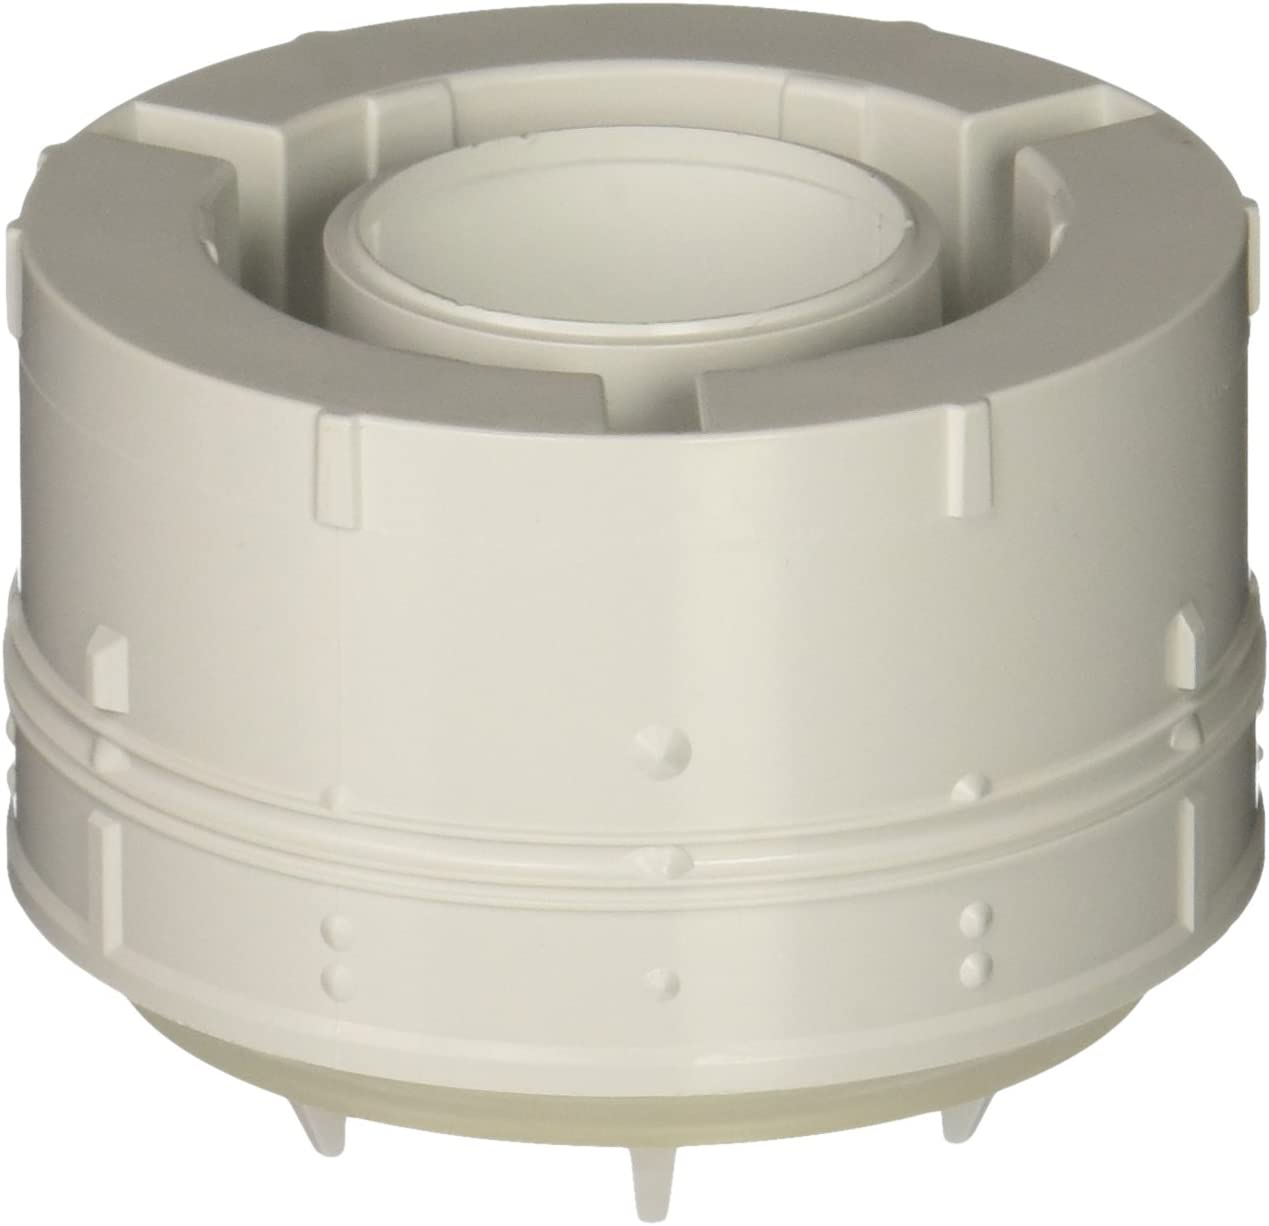 40% OFF Cheap High quality Sale American Standard 83140-00.000 Piston Assembly